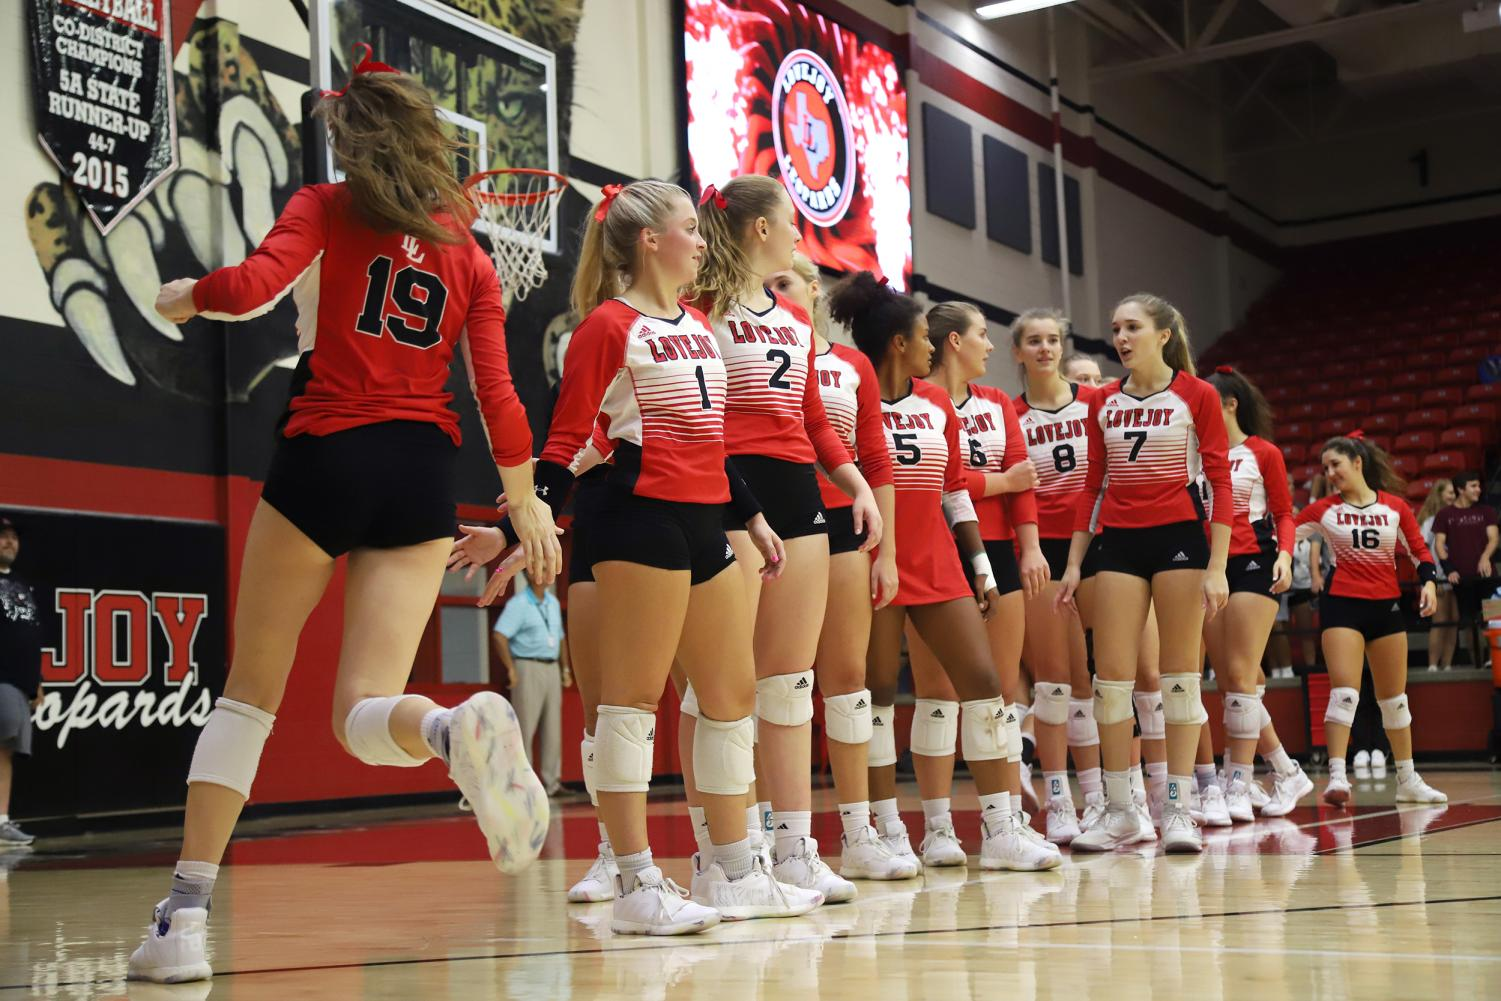 Junior+Lexie+Collins+high+fives+senior+Mckenna+Franks+after+her+name+is+called+out+before+the+game.+Afterwards%2C+the+Leopards+stood+together+as+the+national+anthem+was+played.